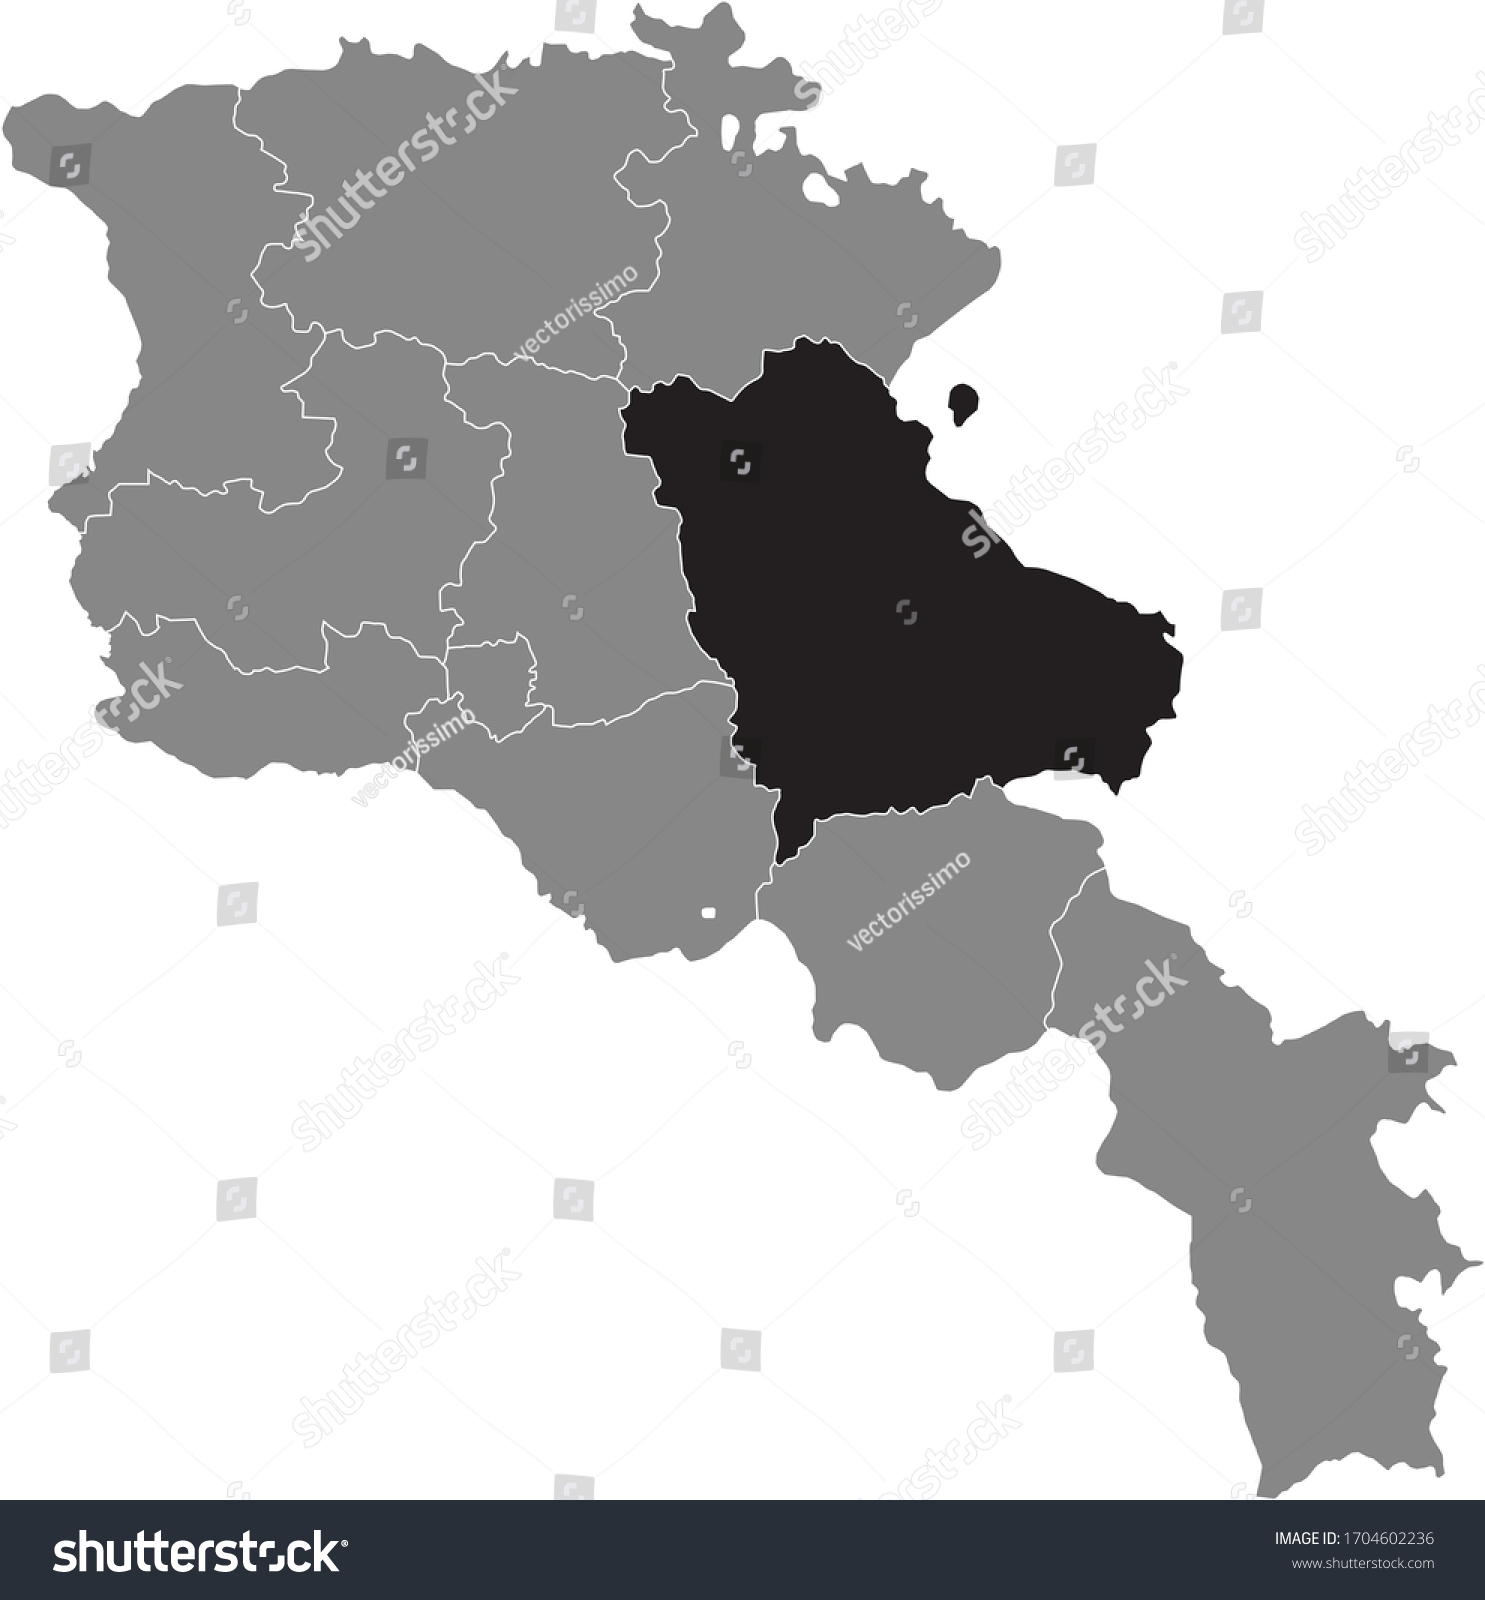 Picture of: Black Location Map Armenian Province Gegharkunik Stock Vector Royalty Free 1704602236